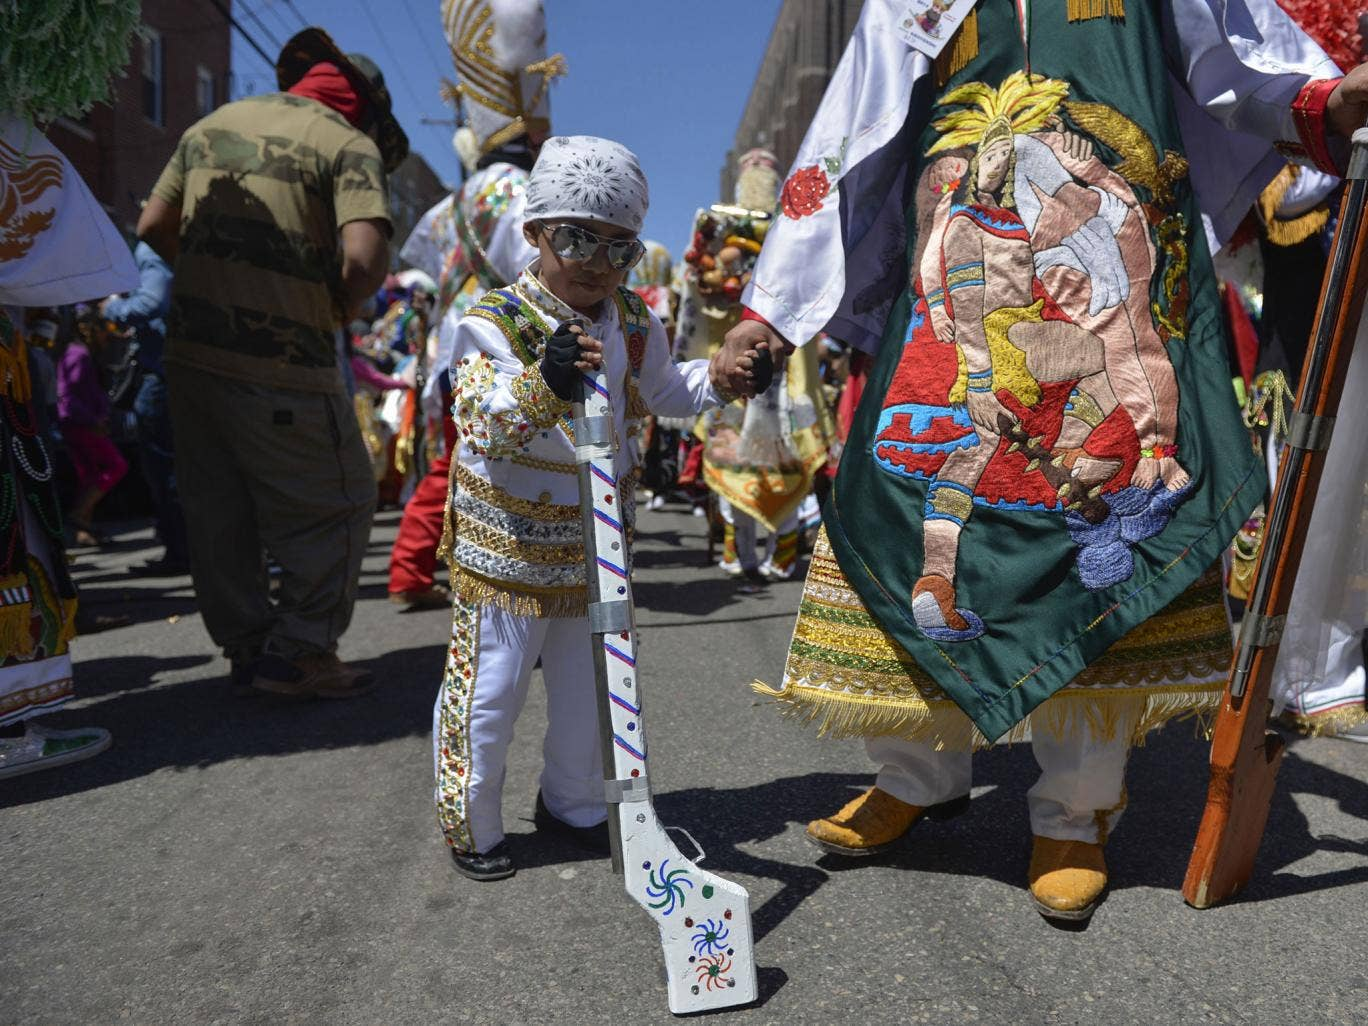 A boy dressed in carnival attire waits with his father before the Carnaval de Puebla, a traditional Mexican carnival celebration that re-enacts the Battle of Cinco de Mayo